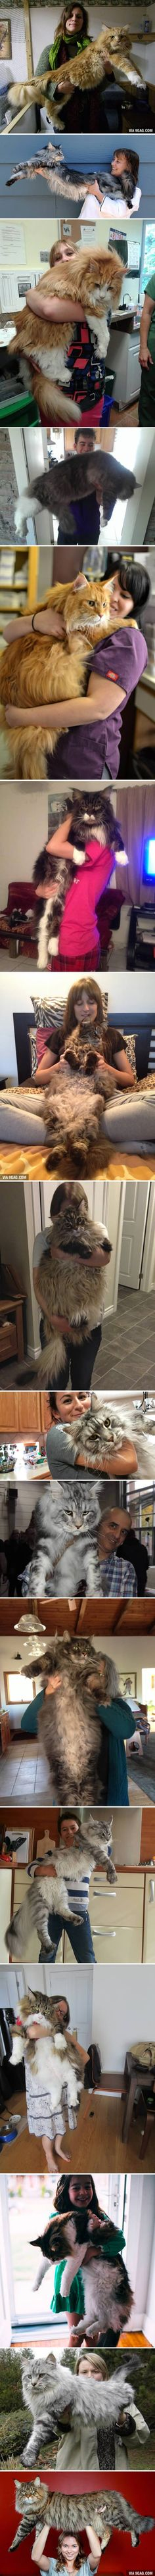 16 Massive Cats Who Make Their Humans Seem SO Small